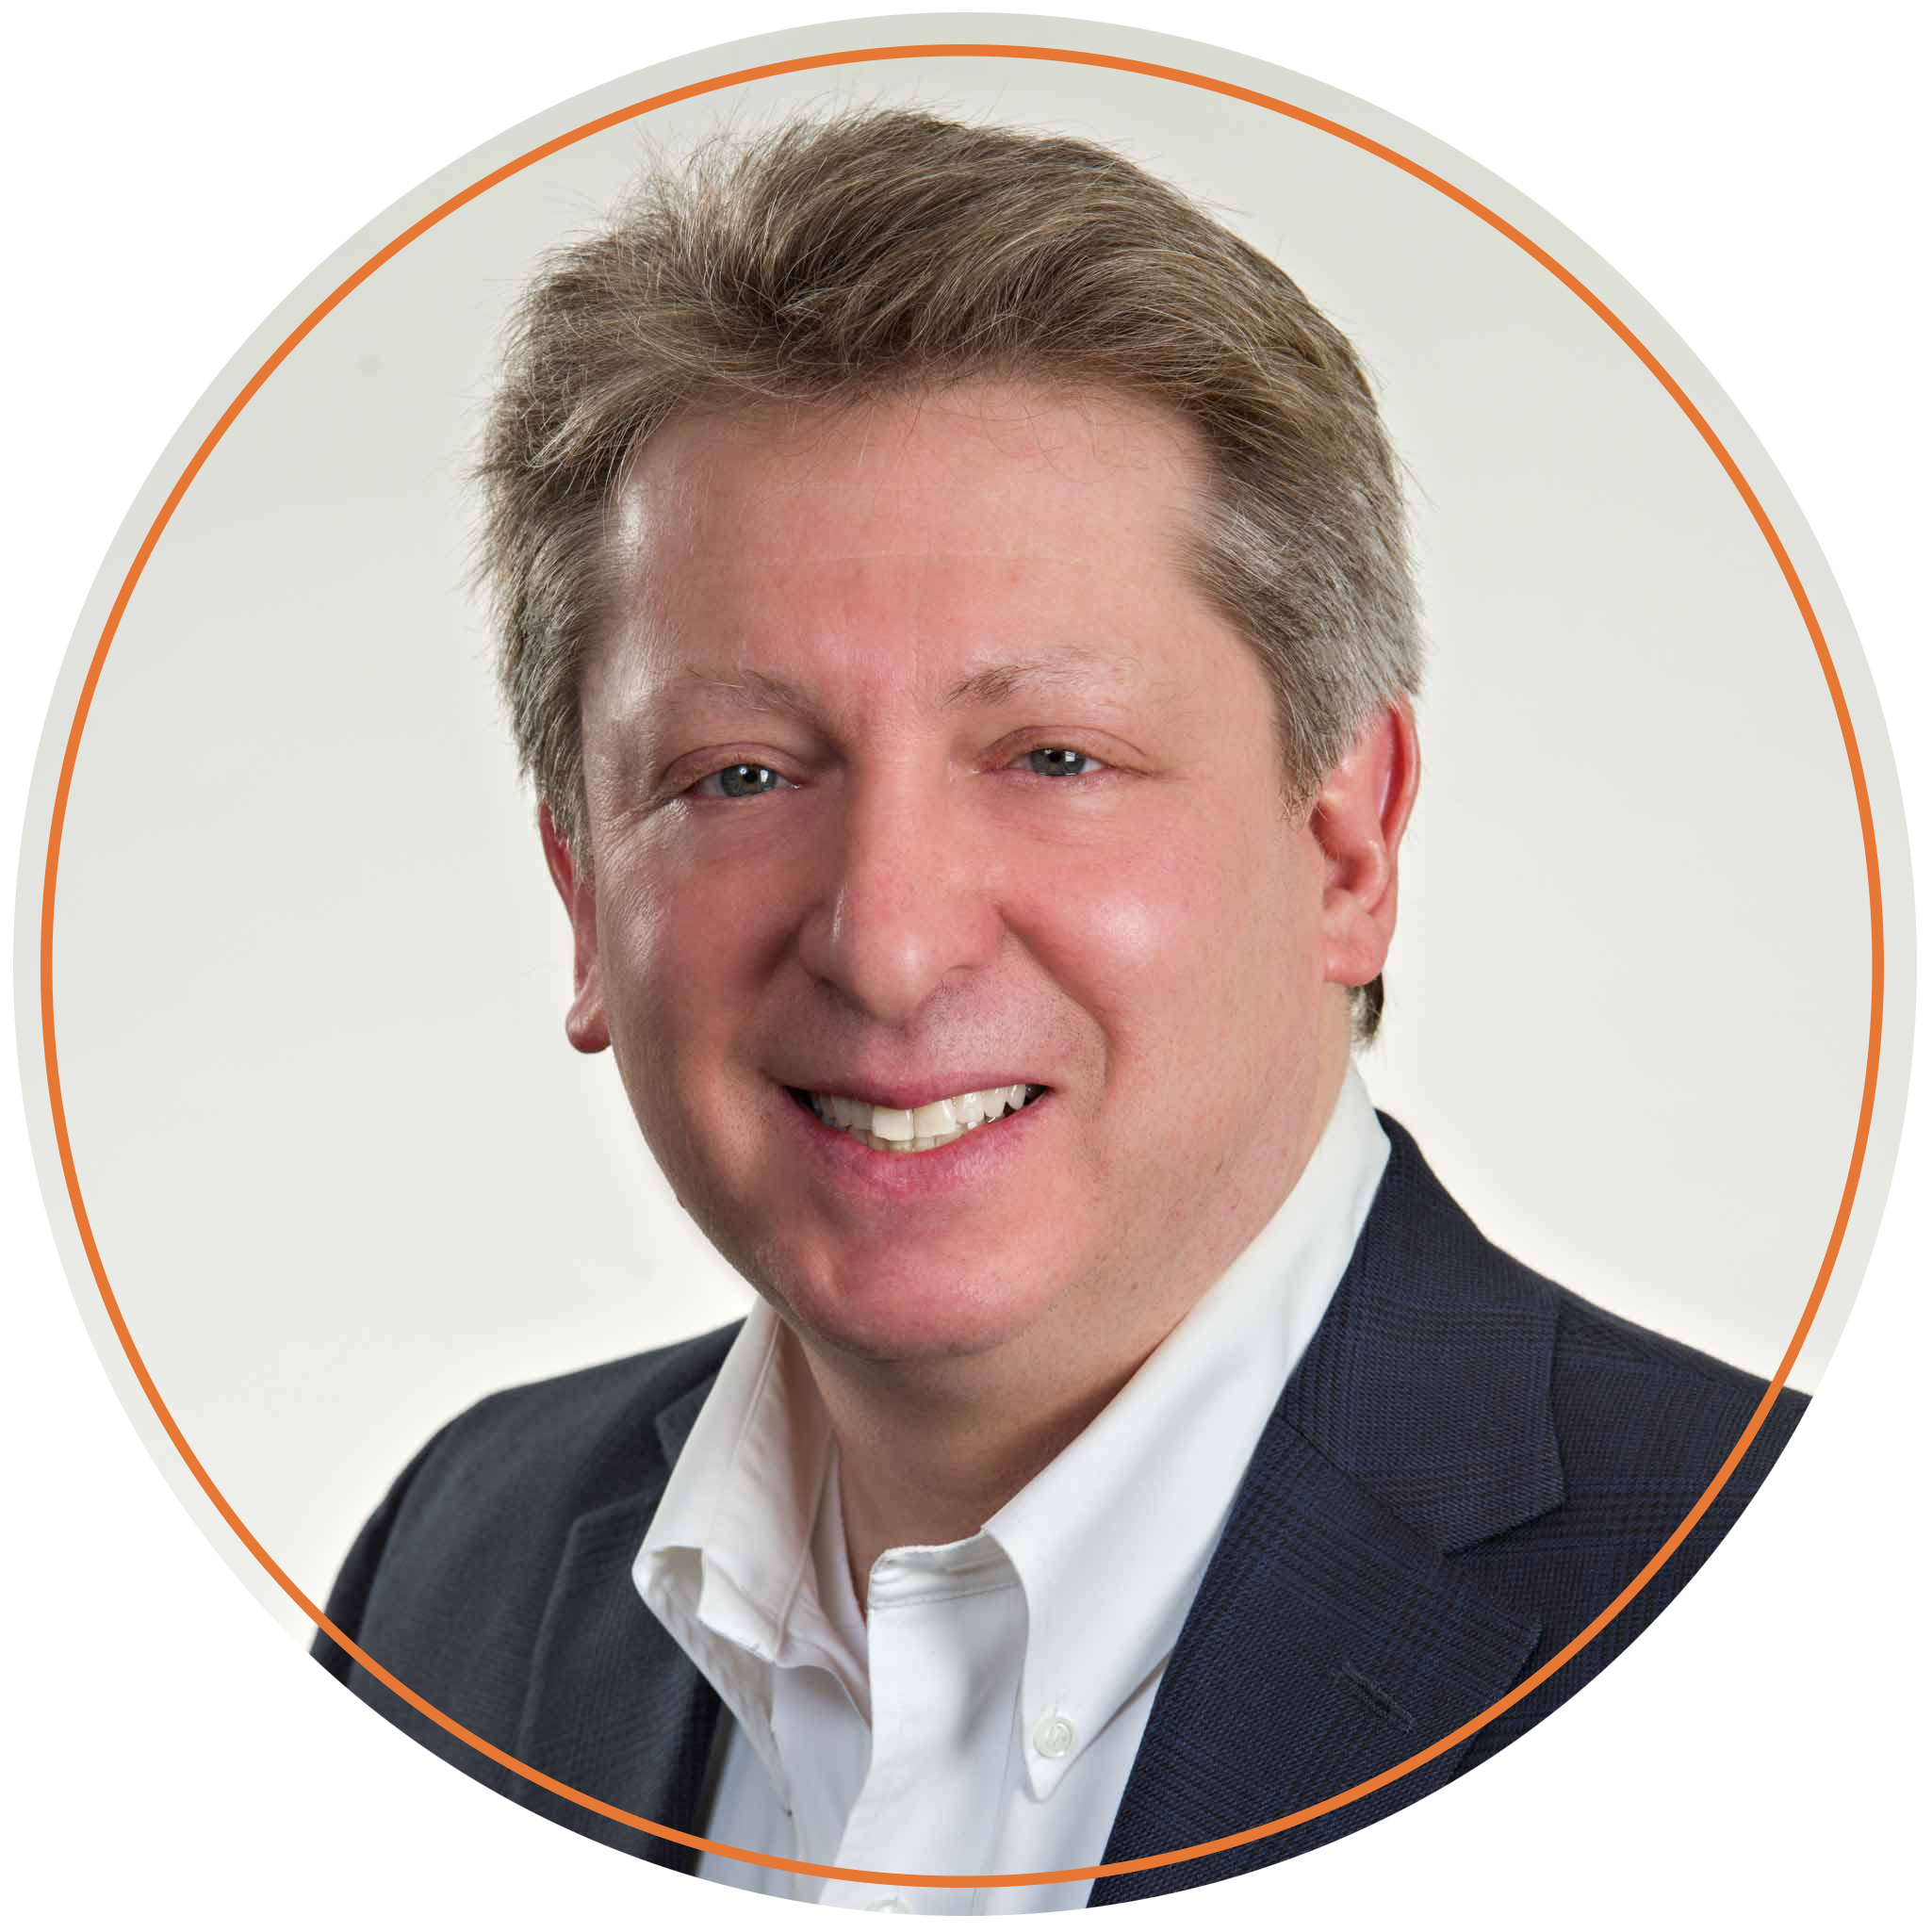 Ron Shevlin  - Director of Research at Cornerstone Advisors